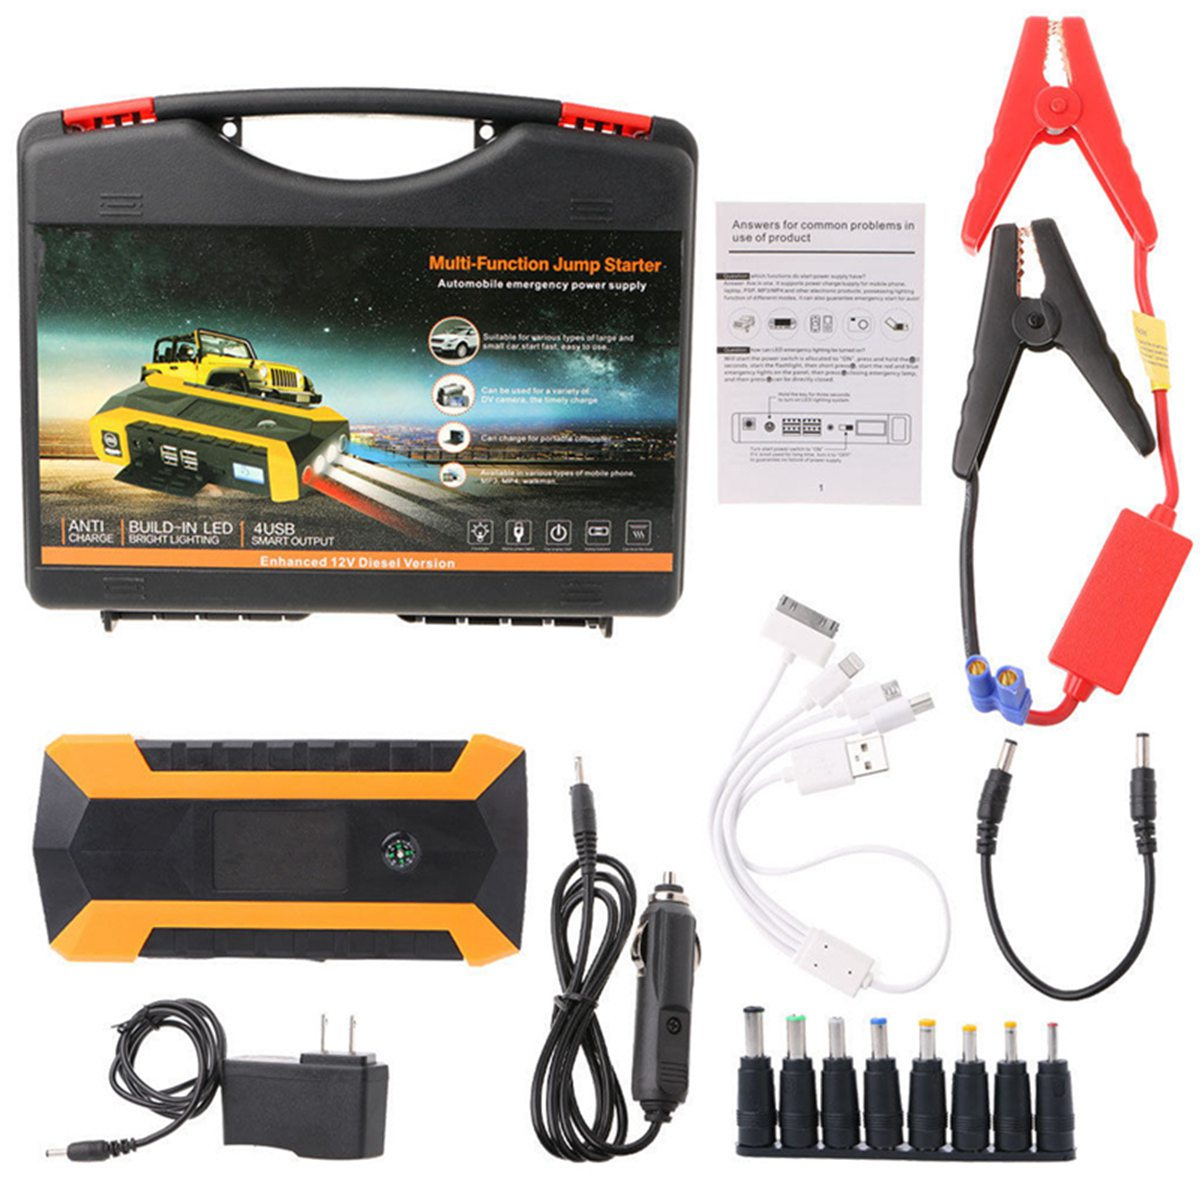 Practical 89800mAh 12V 4USB Car Battery Charger Starting Car Jump Starter Booster Power Bank Tool Kit For Auto Starting Device 12v 82800mah 4usb high power car jump starter battery charger starting car booster power bank tool kit for auto starting device